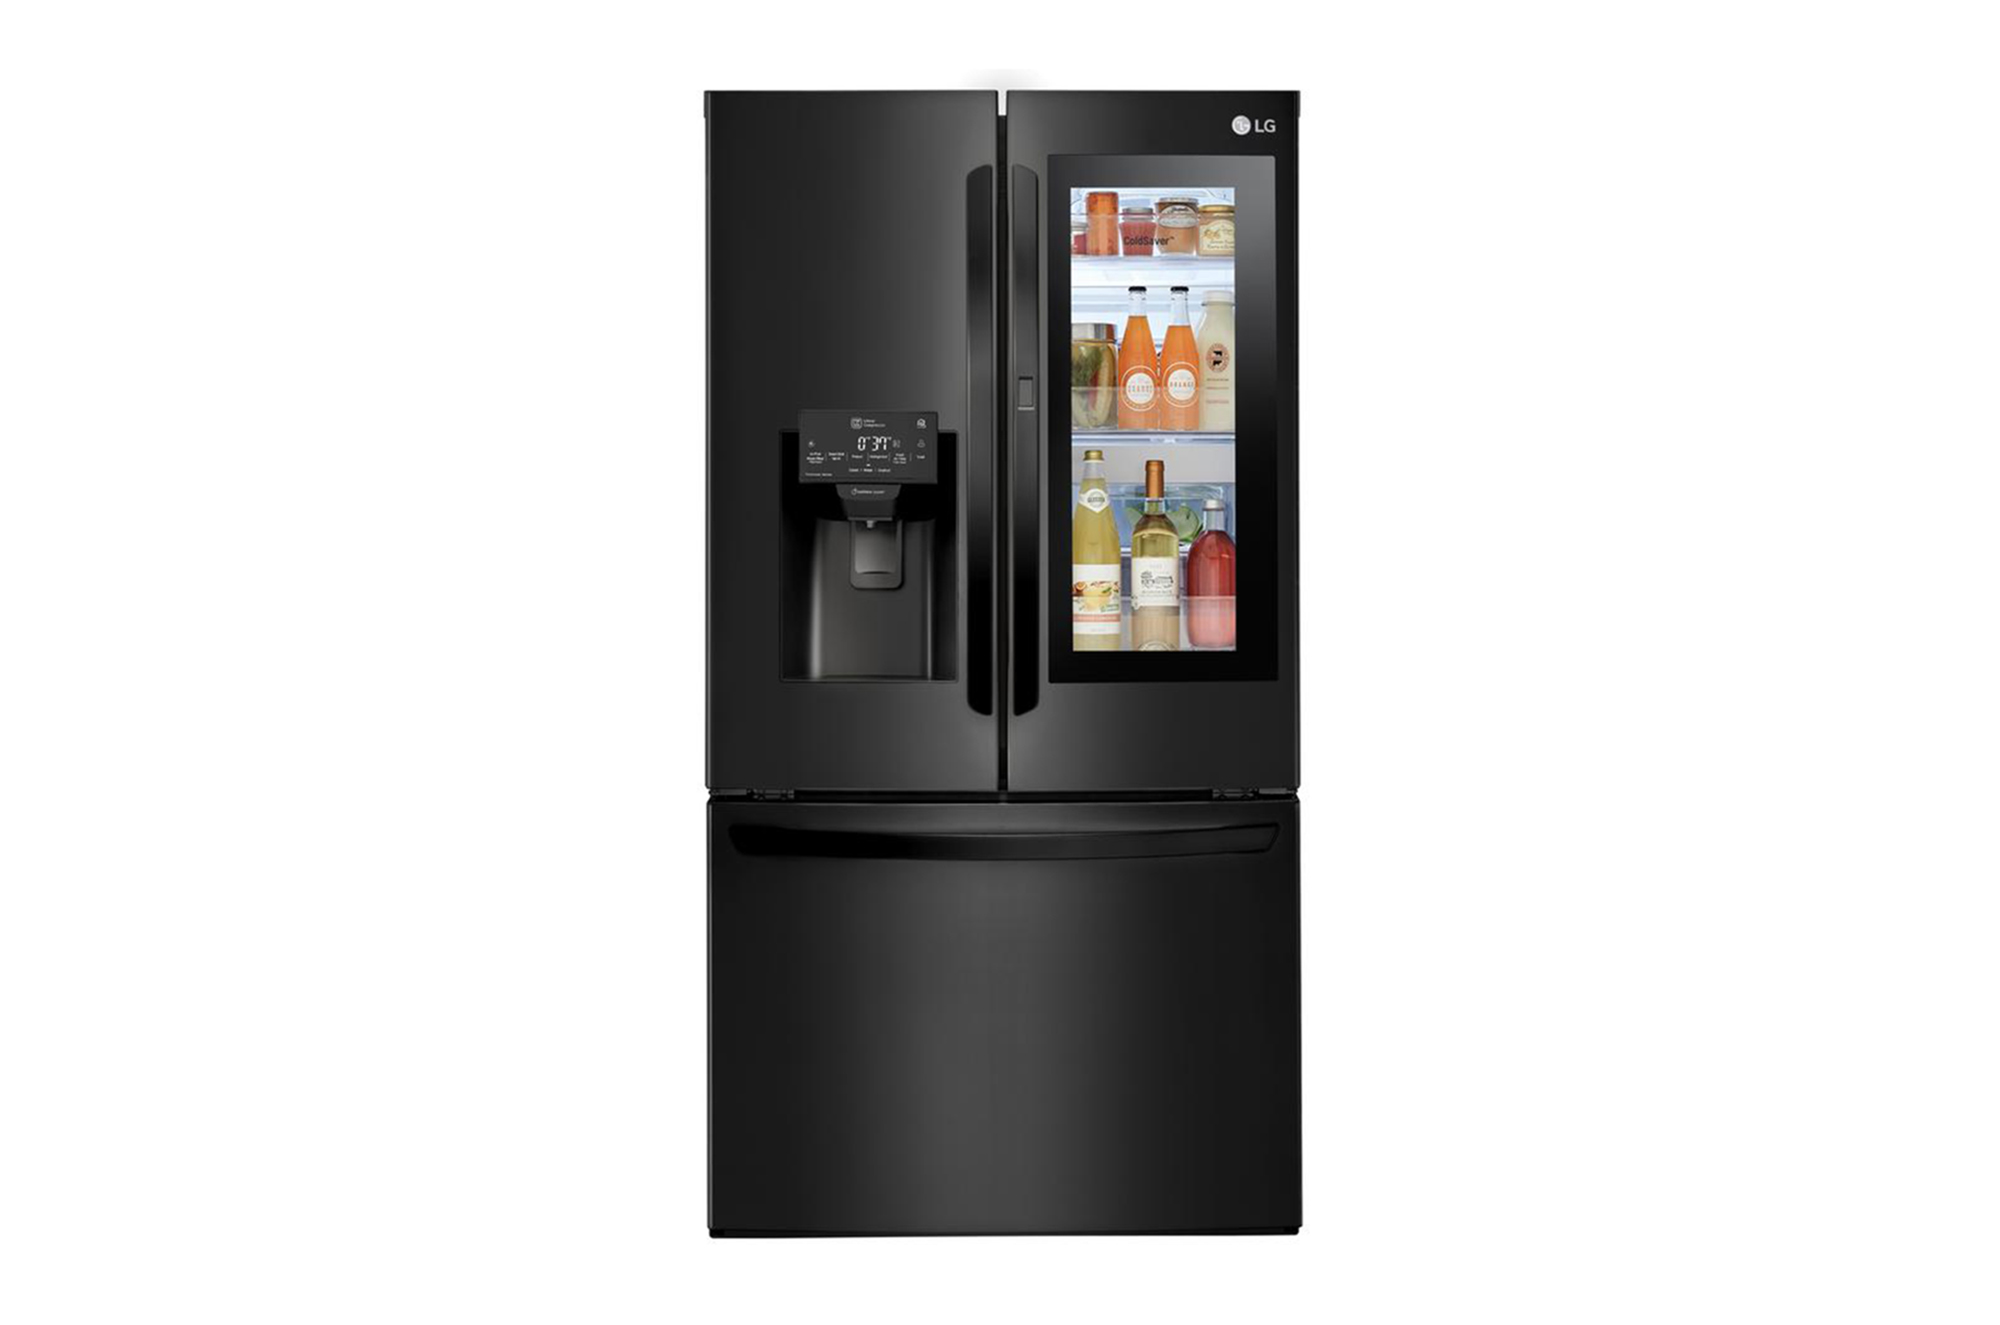 Best Black Friday And Cyber Monday Deals On Household Appliances Real Simple